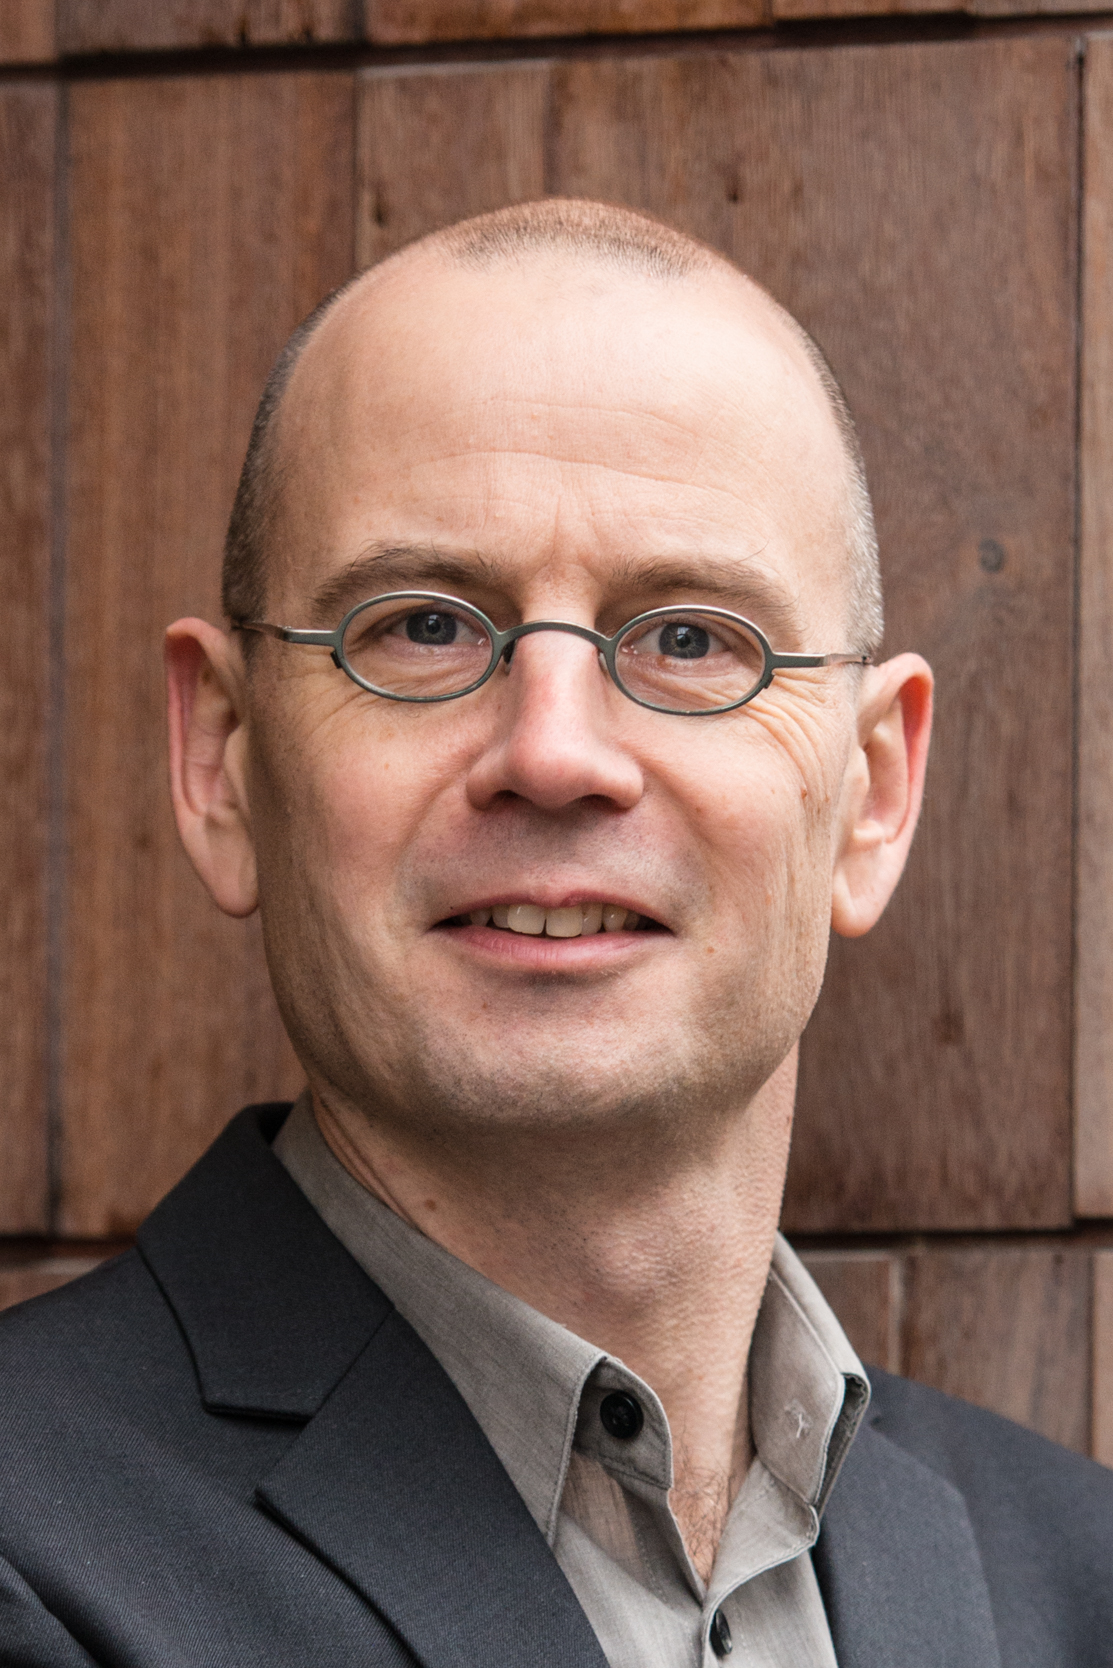 Headshot of Martijn Rietbergen, International Visiting Scholar at Portland State University